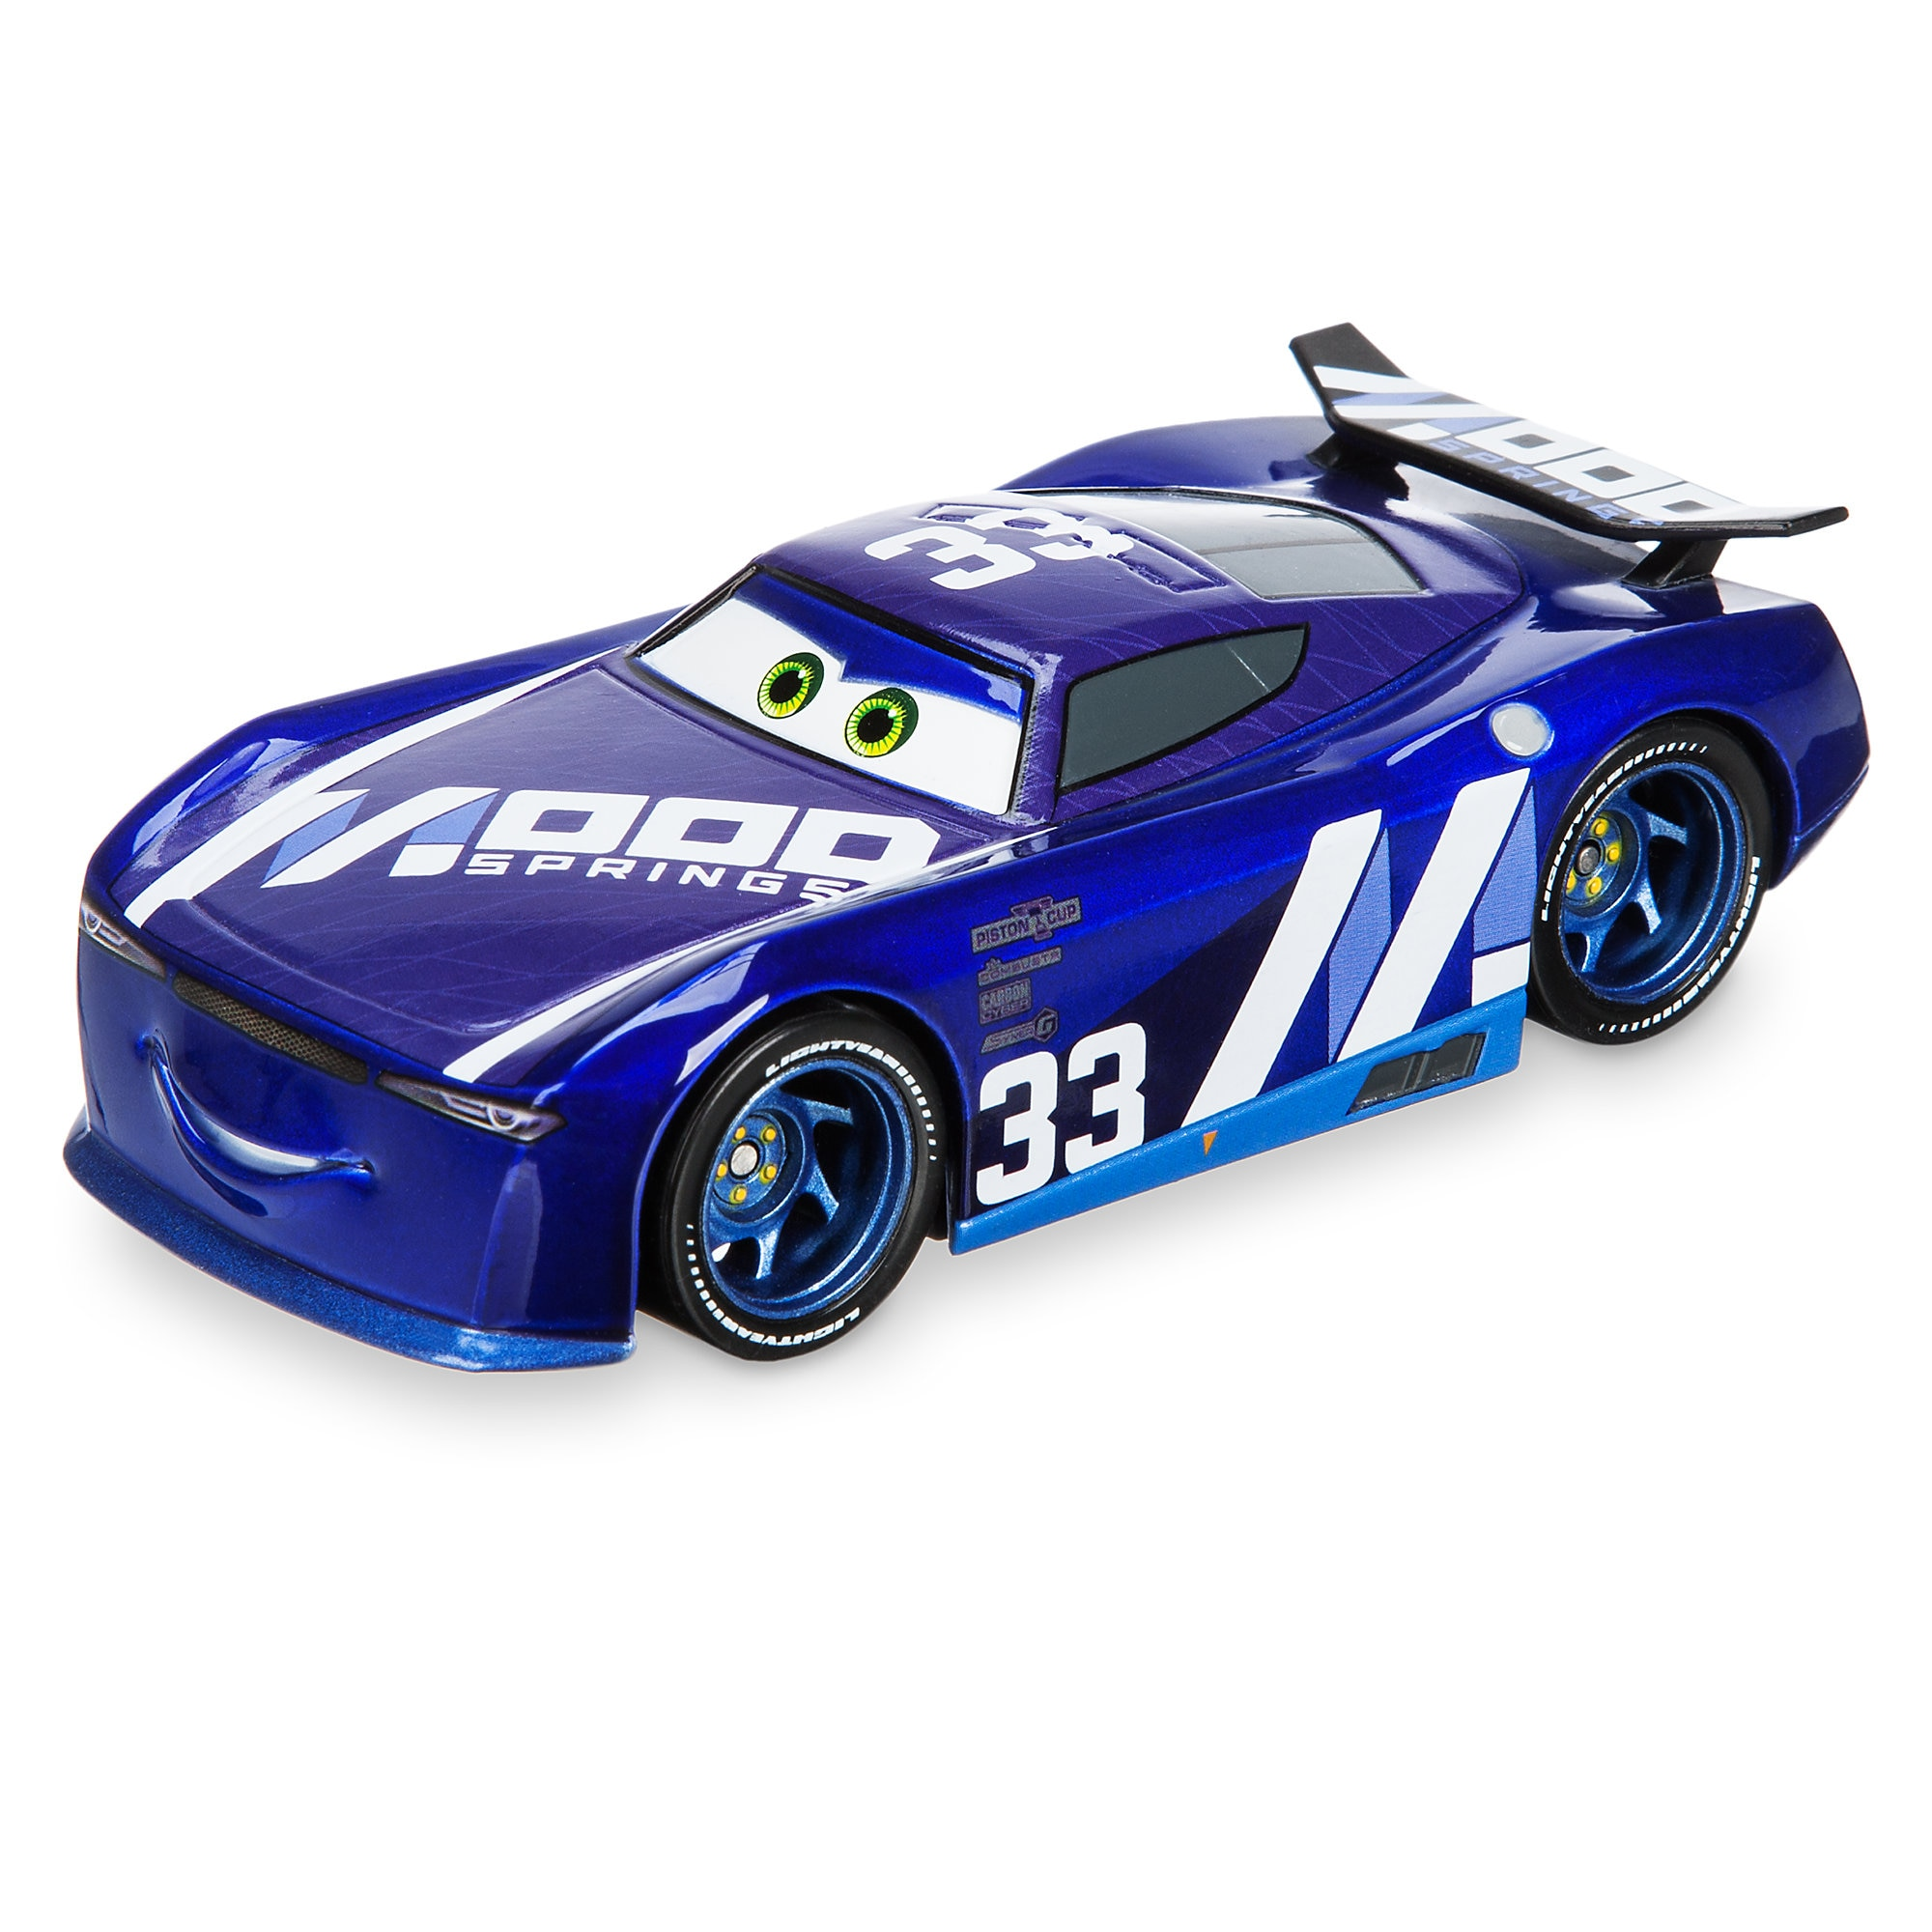 Ed Truncan Die Cast Car - Cars 3 - Chaser Series - Limited Release